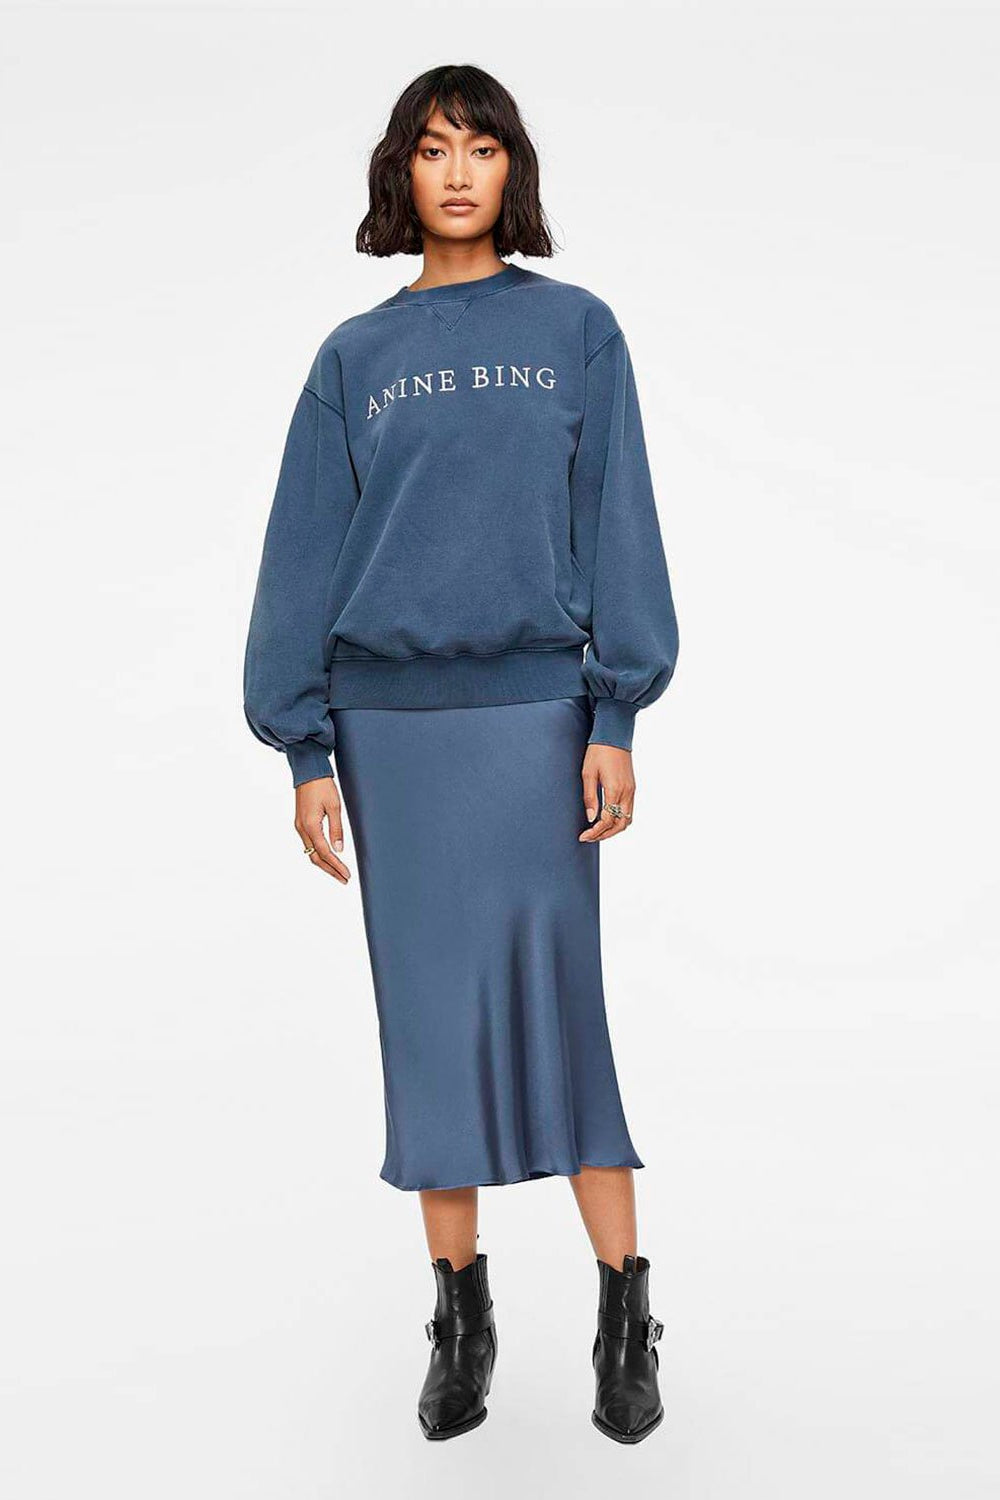 Esme Sweatshirt Blue